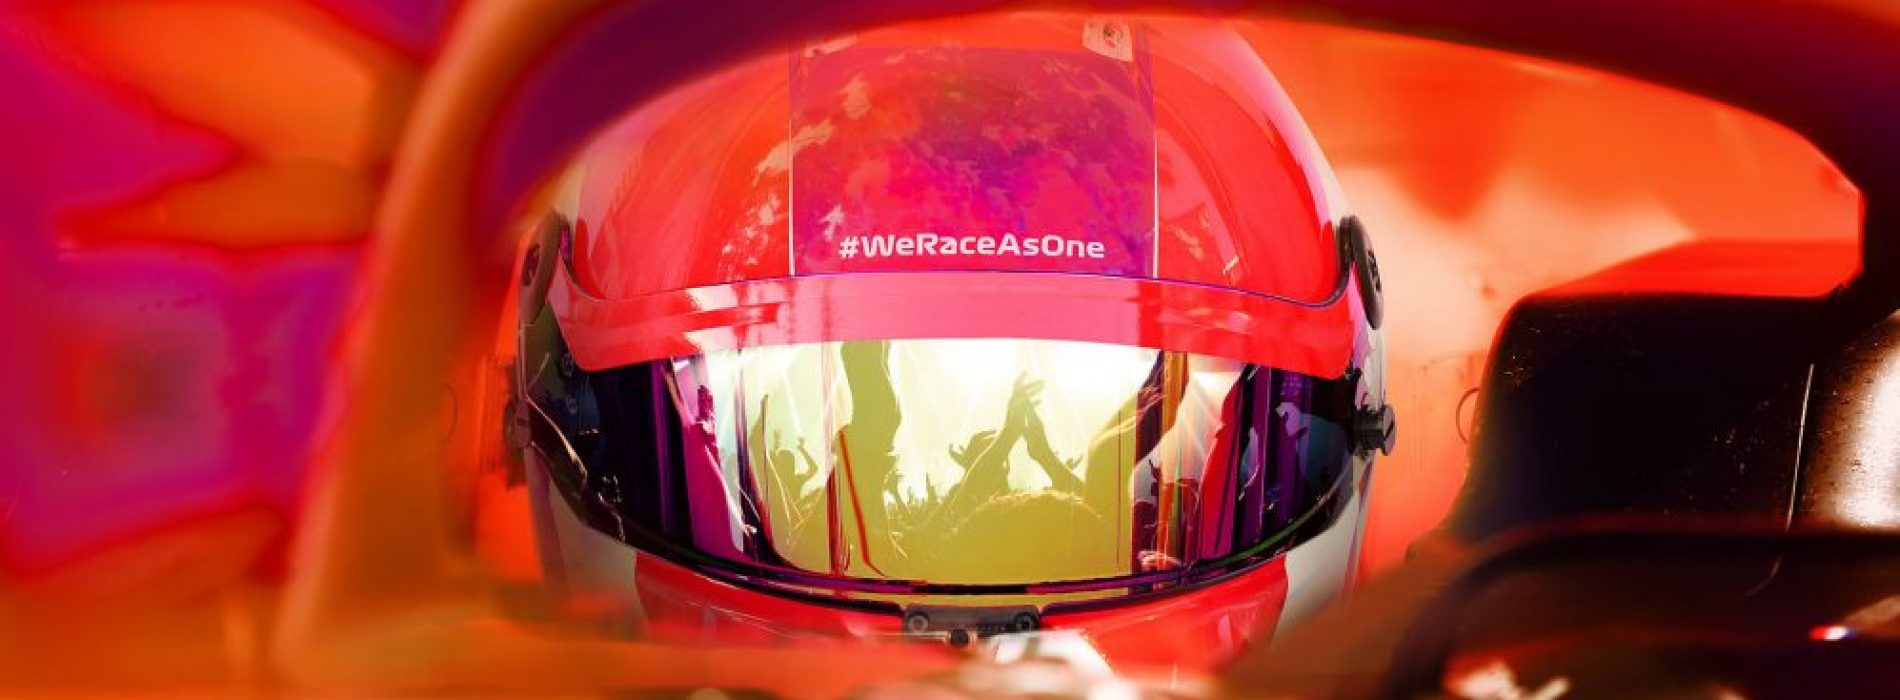 WeRaceAsOne: Formula One makes changes in sustainability, equality and community.